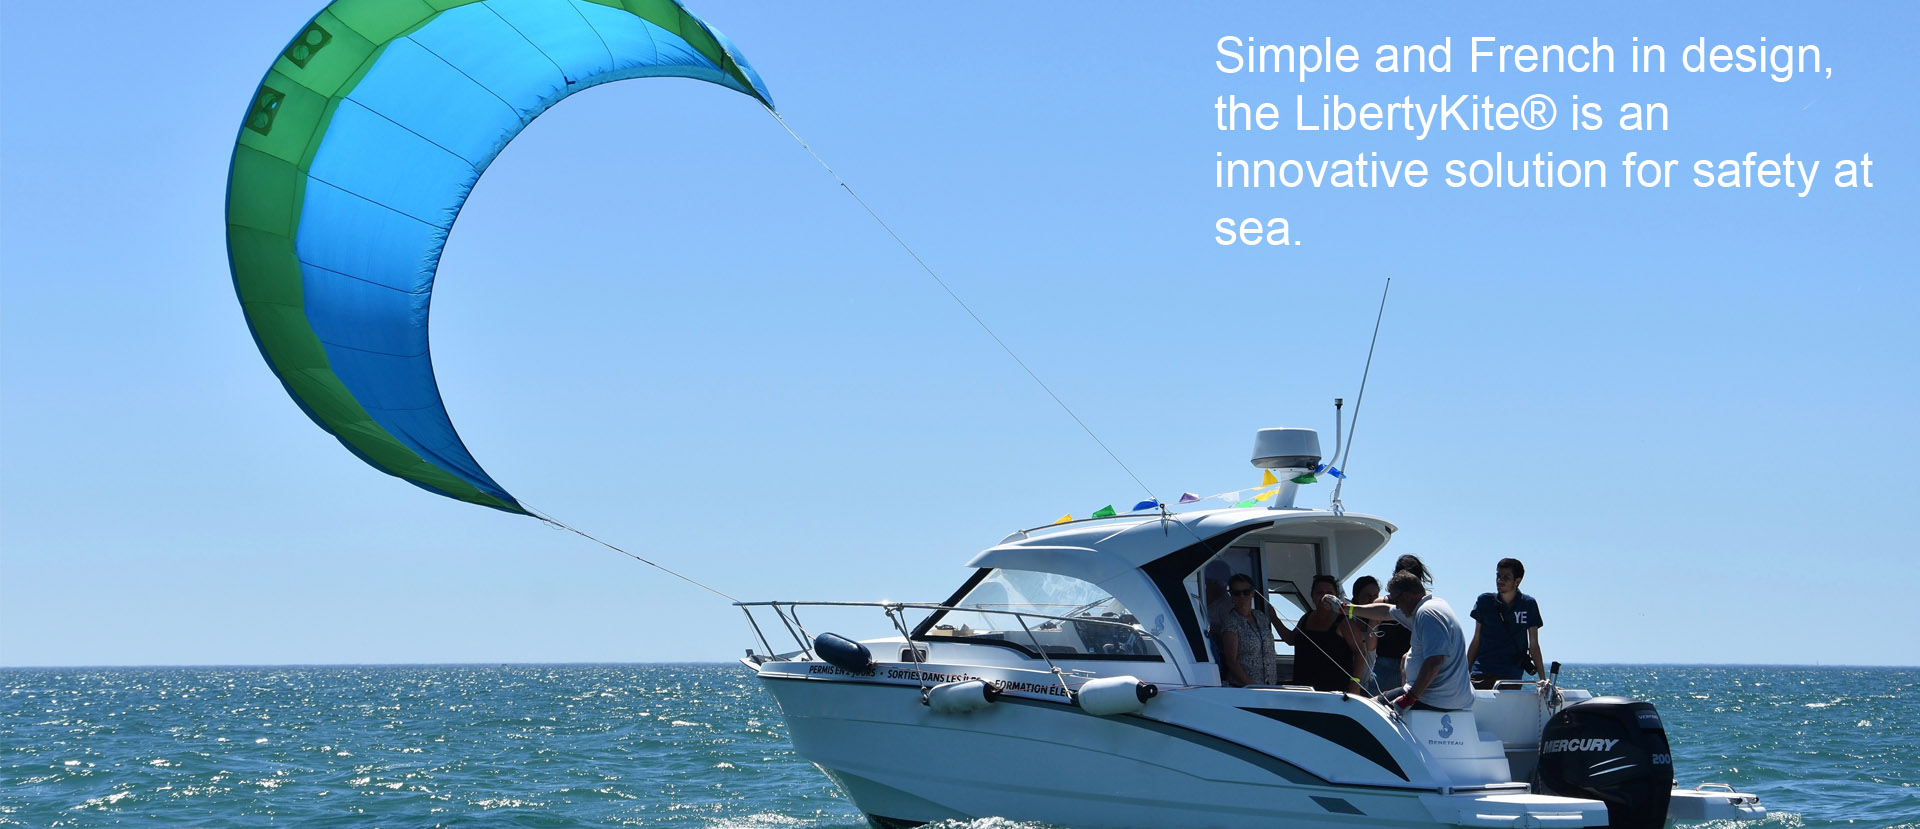 Simple and French in design, the LibertyKite® is an innovative solution for safety at sea.